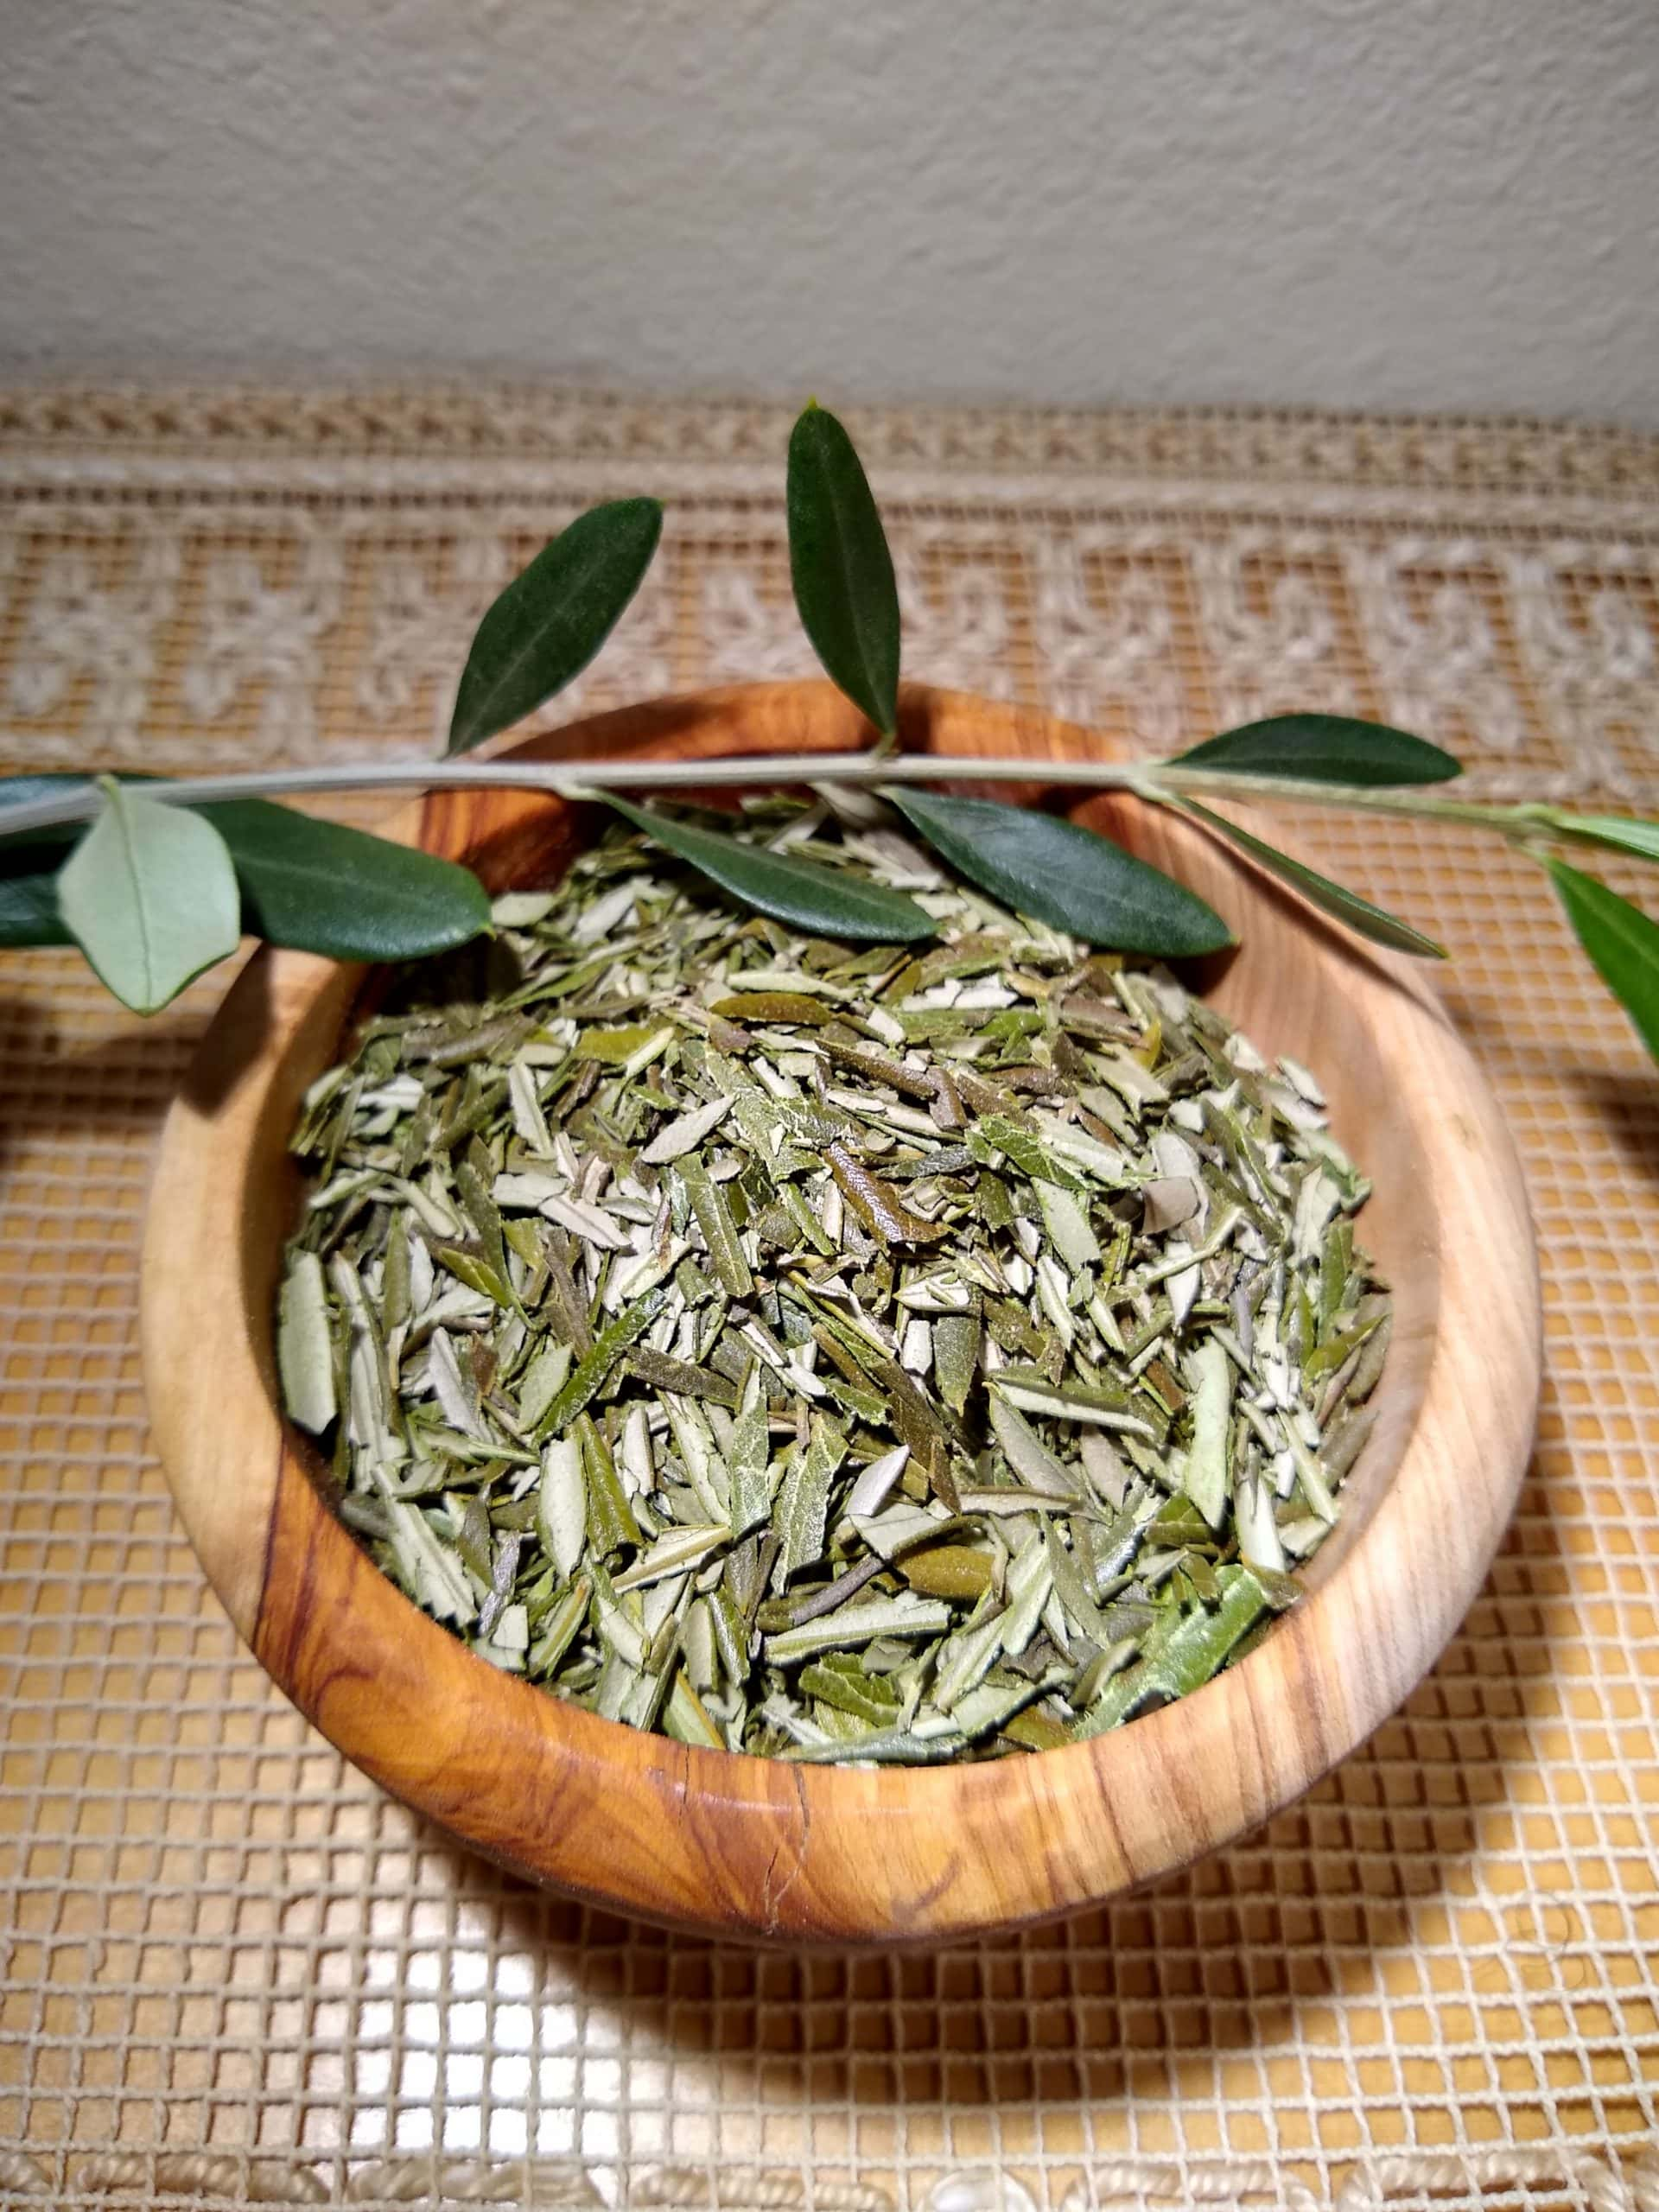 Olive Leaf Tea - Photo of a bowl of dried olive leaves with a branch across the top